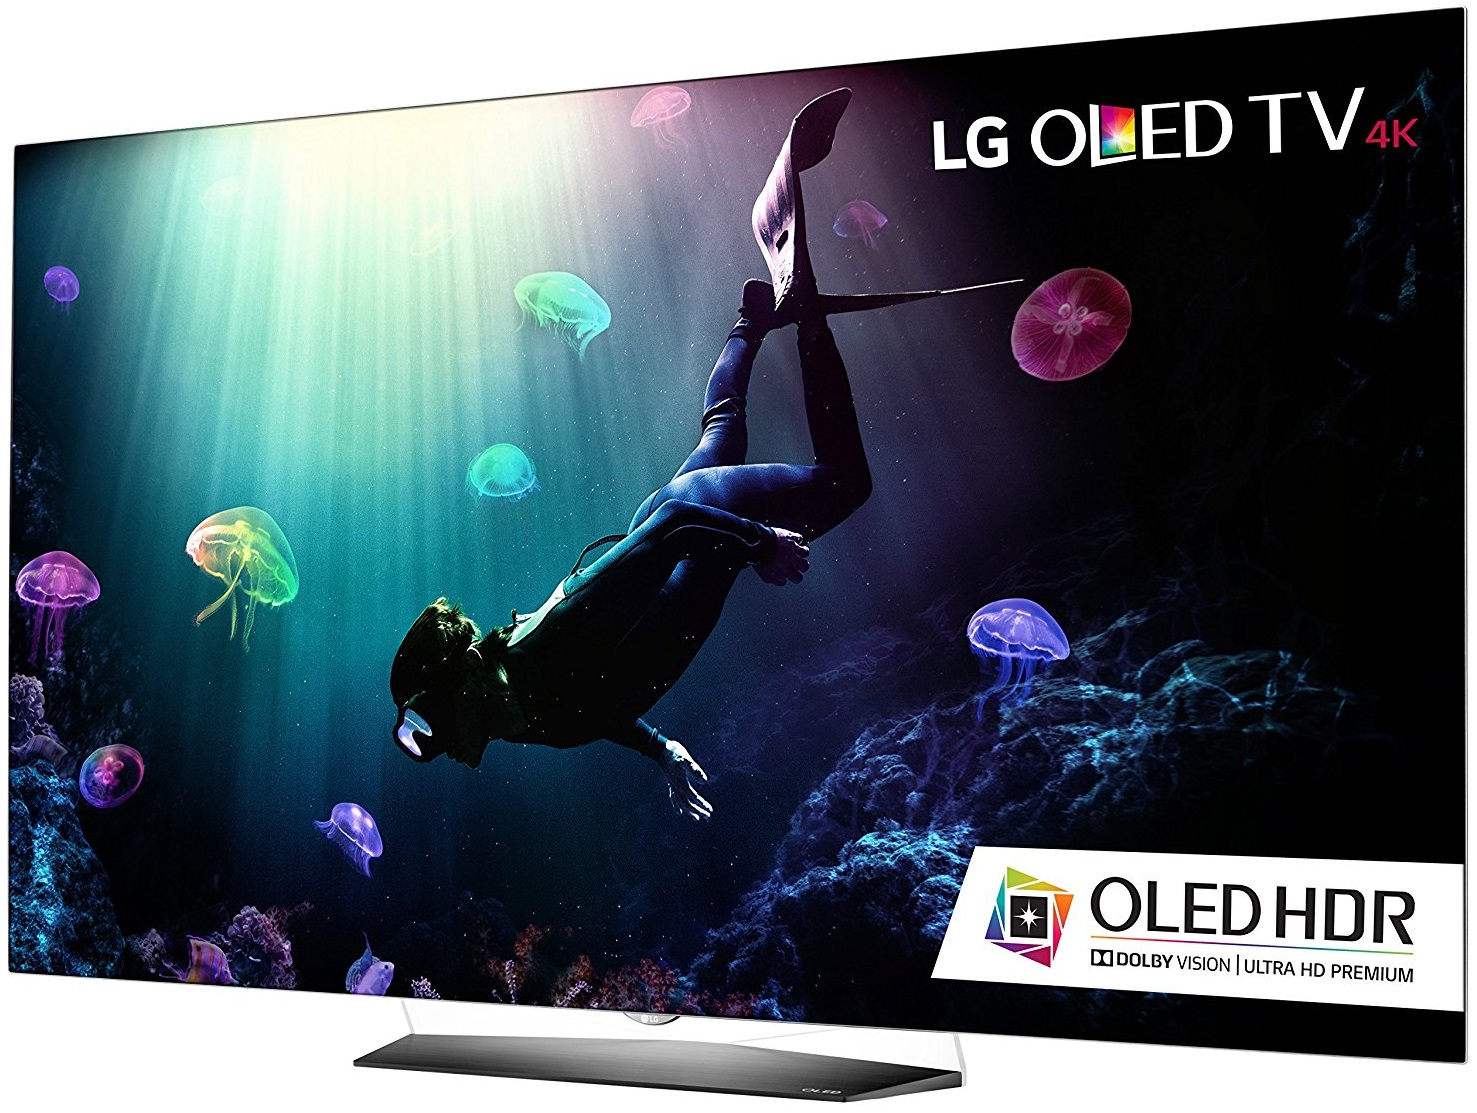 lg oled55b7a vs oled55b6p comparison comparison of lg 39 s 2017 and 2016 basic 55 inch oled 4k tv. Black Bedroom Furniture Sets. Home Design Ideas